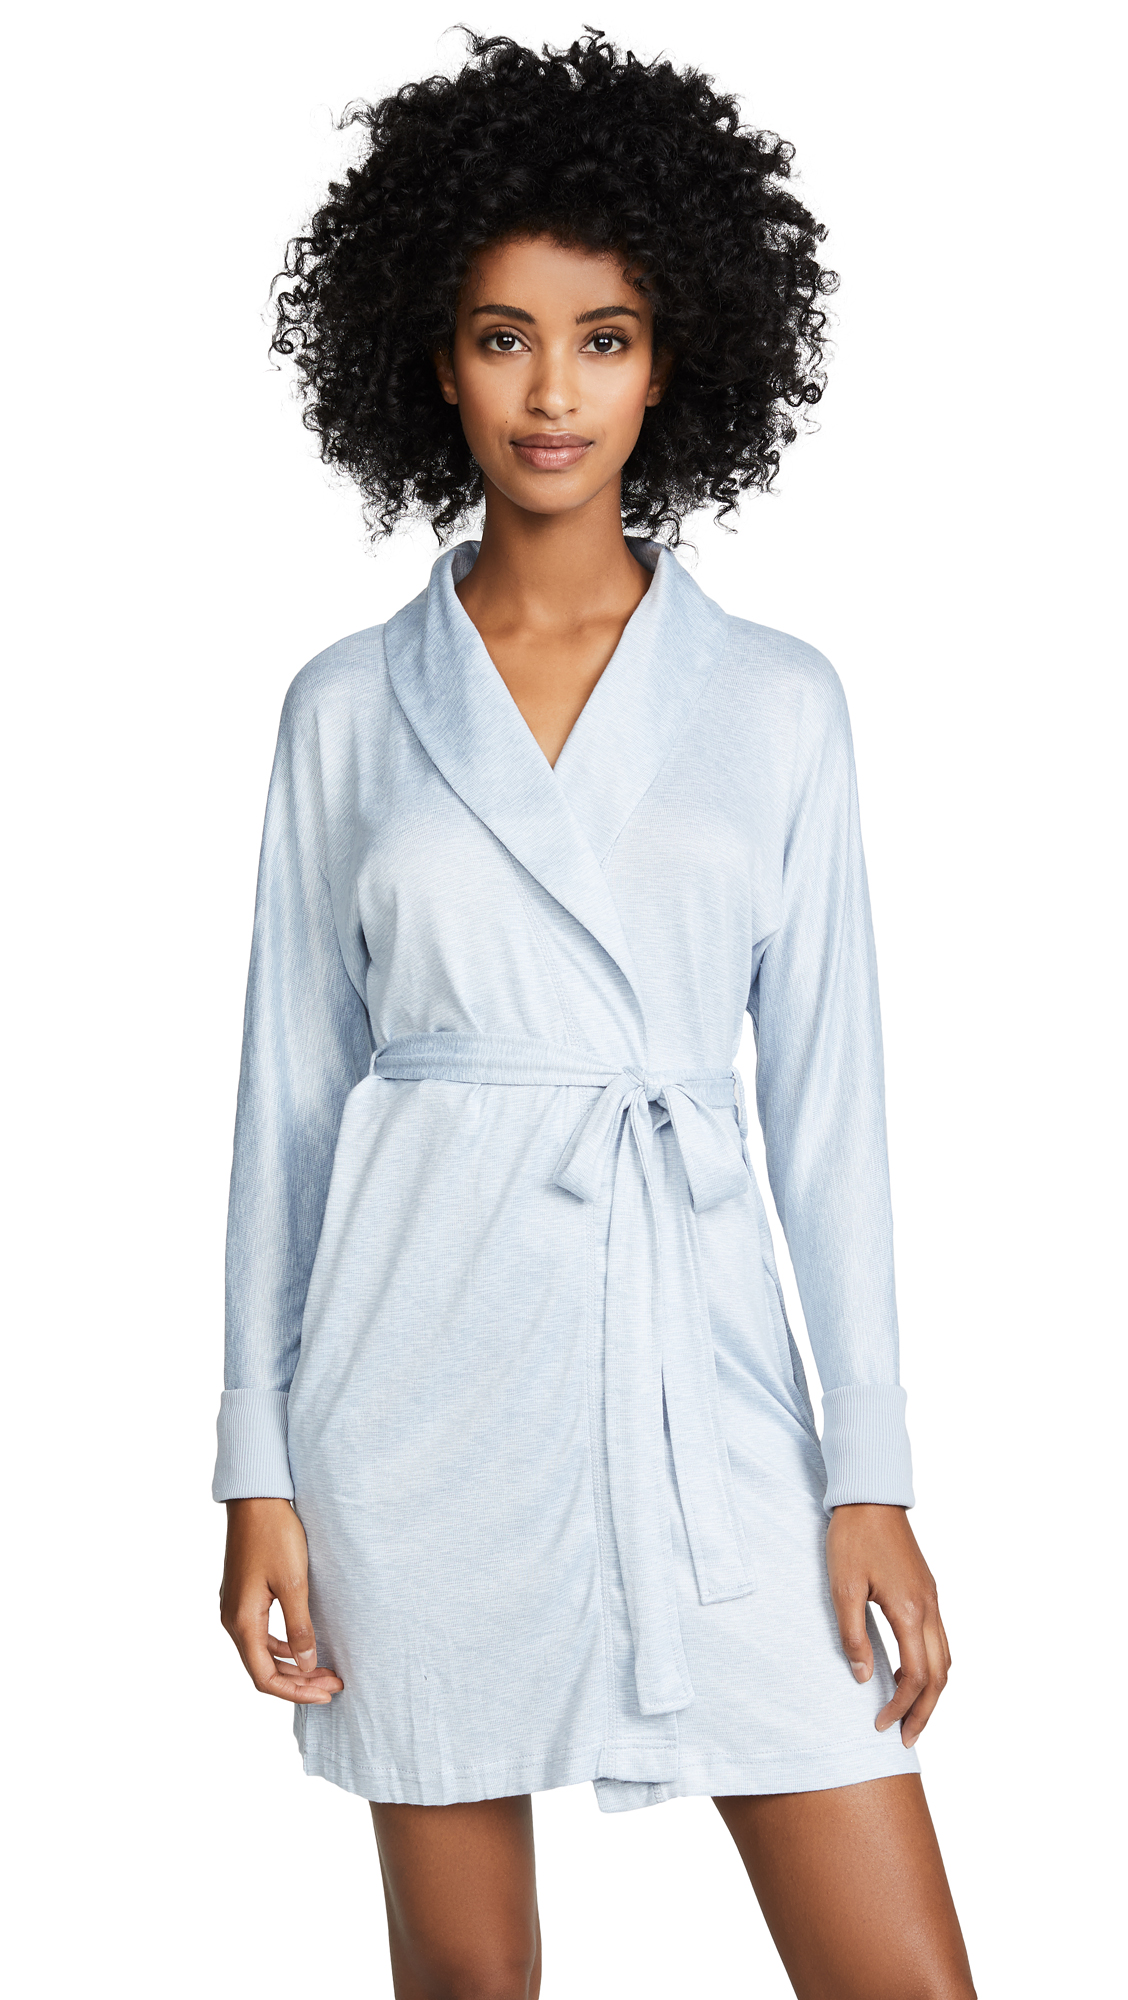 Emerson Road Whisperluxe Robe In High-Rise